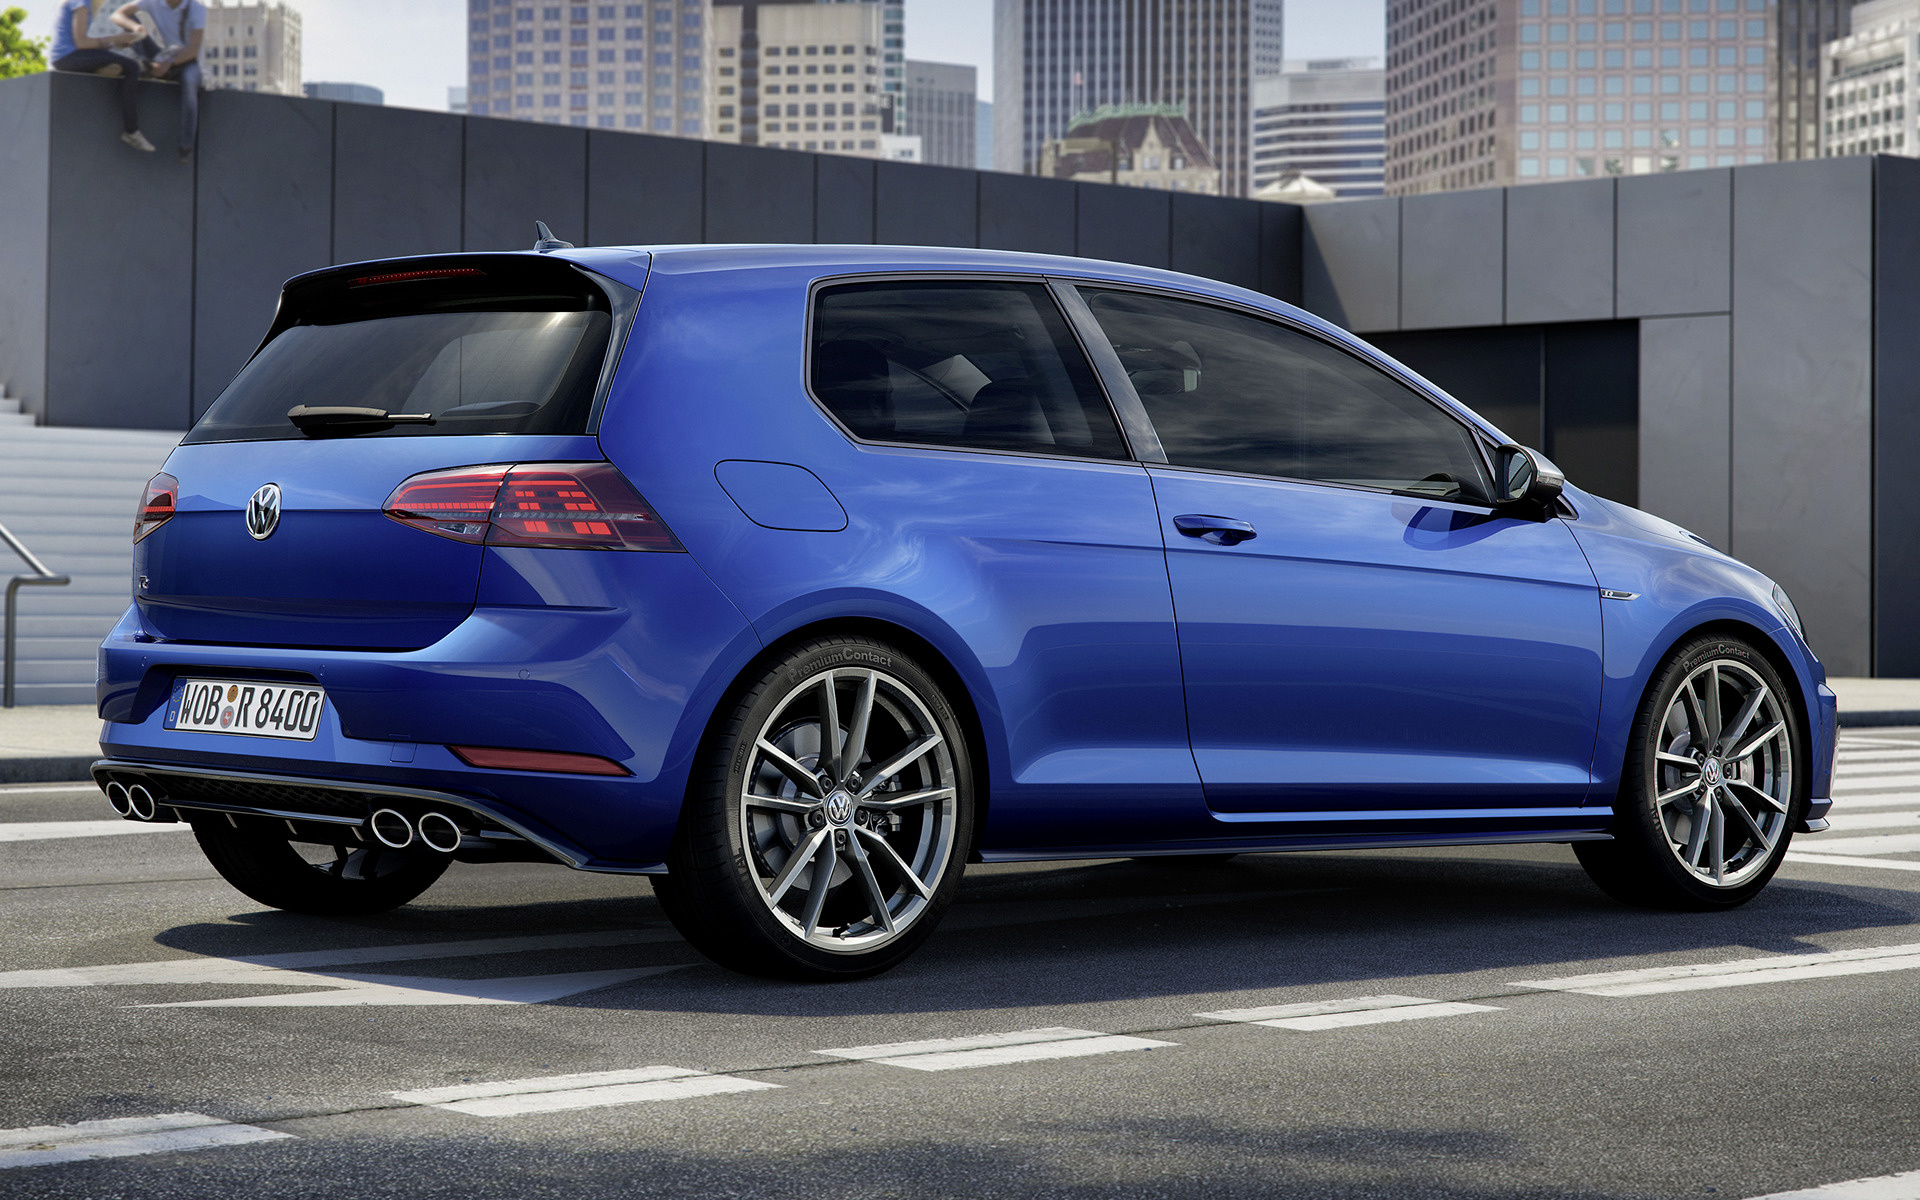 2017 volkswagen golf r 3 door wallpapers and hd images. Black Bedroom Furniture Sets. Home Design Ideas